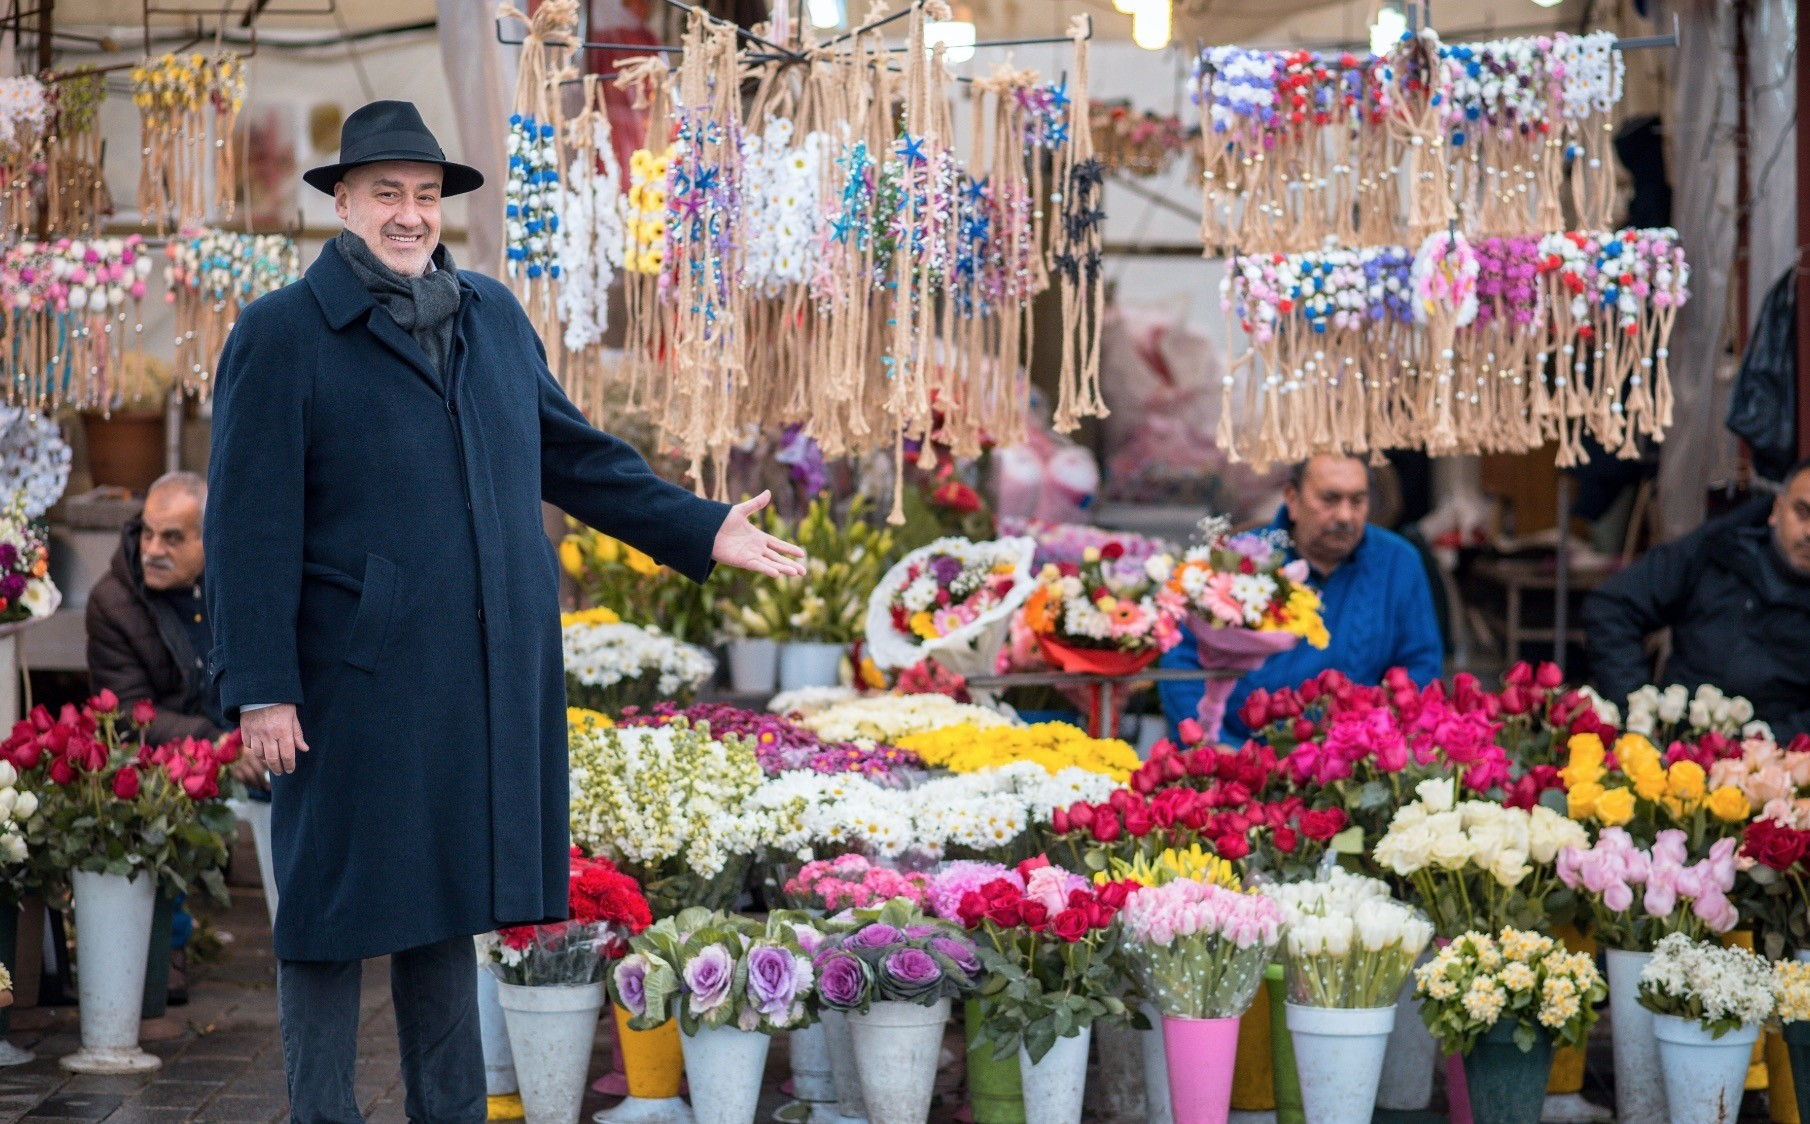 Perfumer Vedat Ozan says that it is difficult to define a city with a single fragrance.